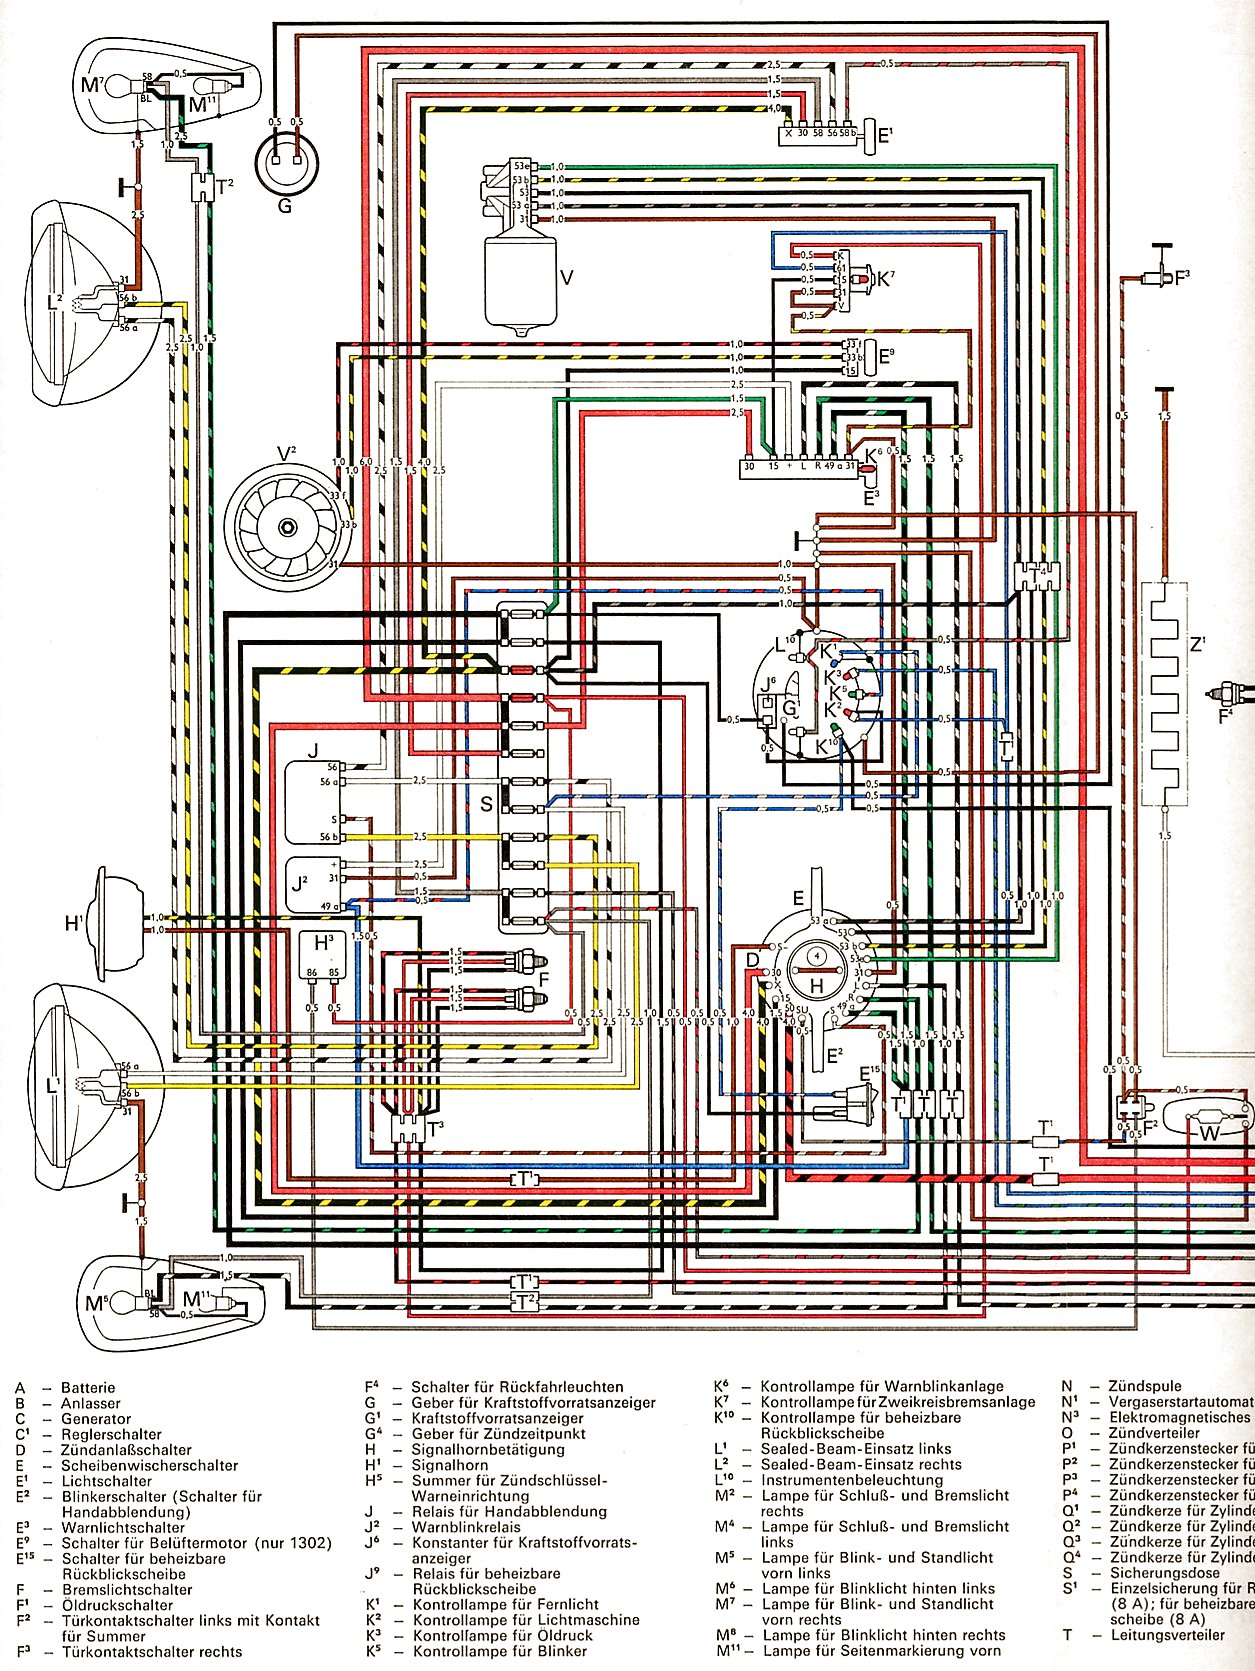 1300_and_1302_USA_from_August_1971 1 wiring diagram shoptalkforums com vw wiring diagrams at readyjetset.co